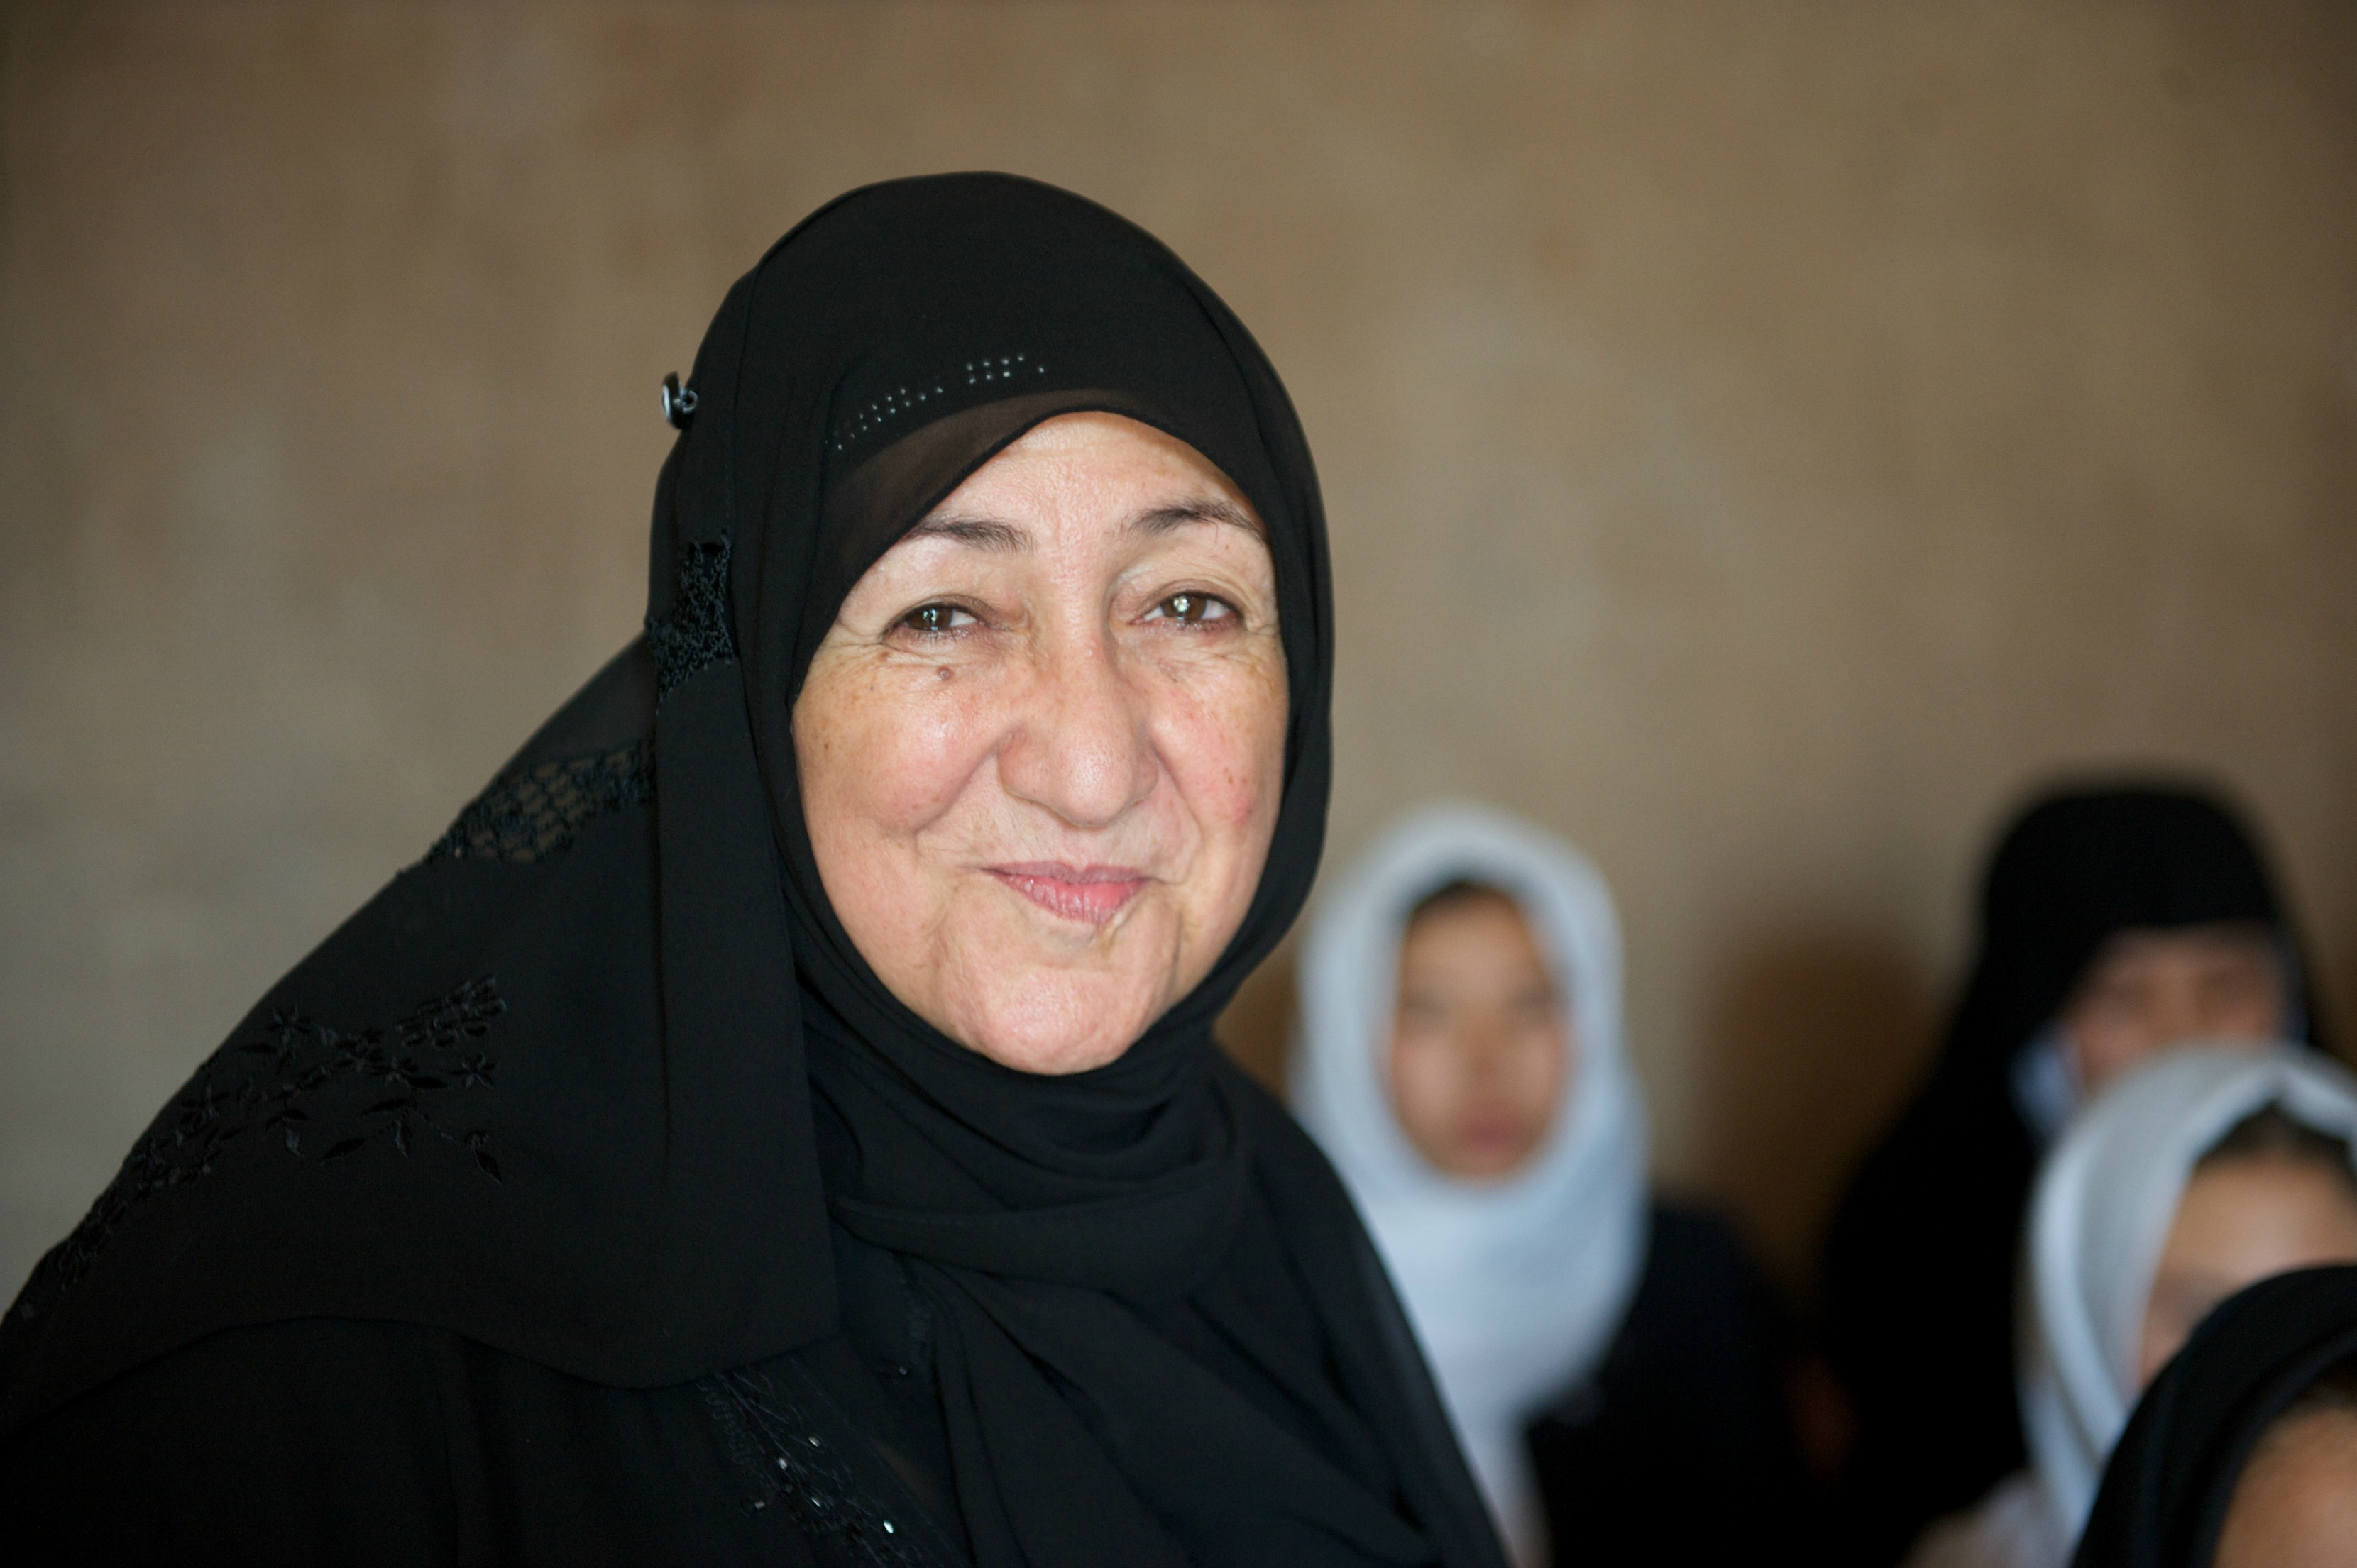 Dr. Sakena Yacoobi, Founder of the Afghan Institute of Learning and Opus Prize Recipient, to speak at MIIS